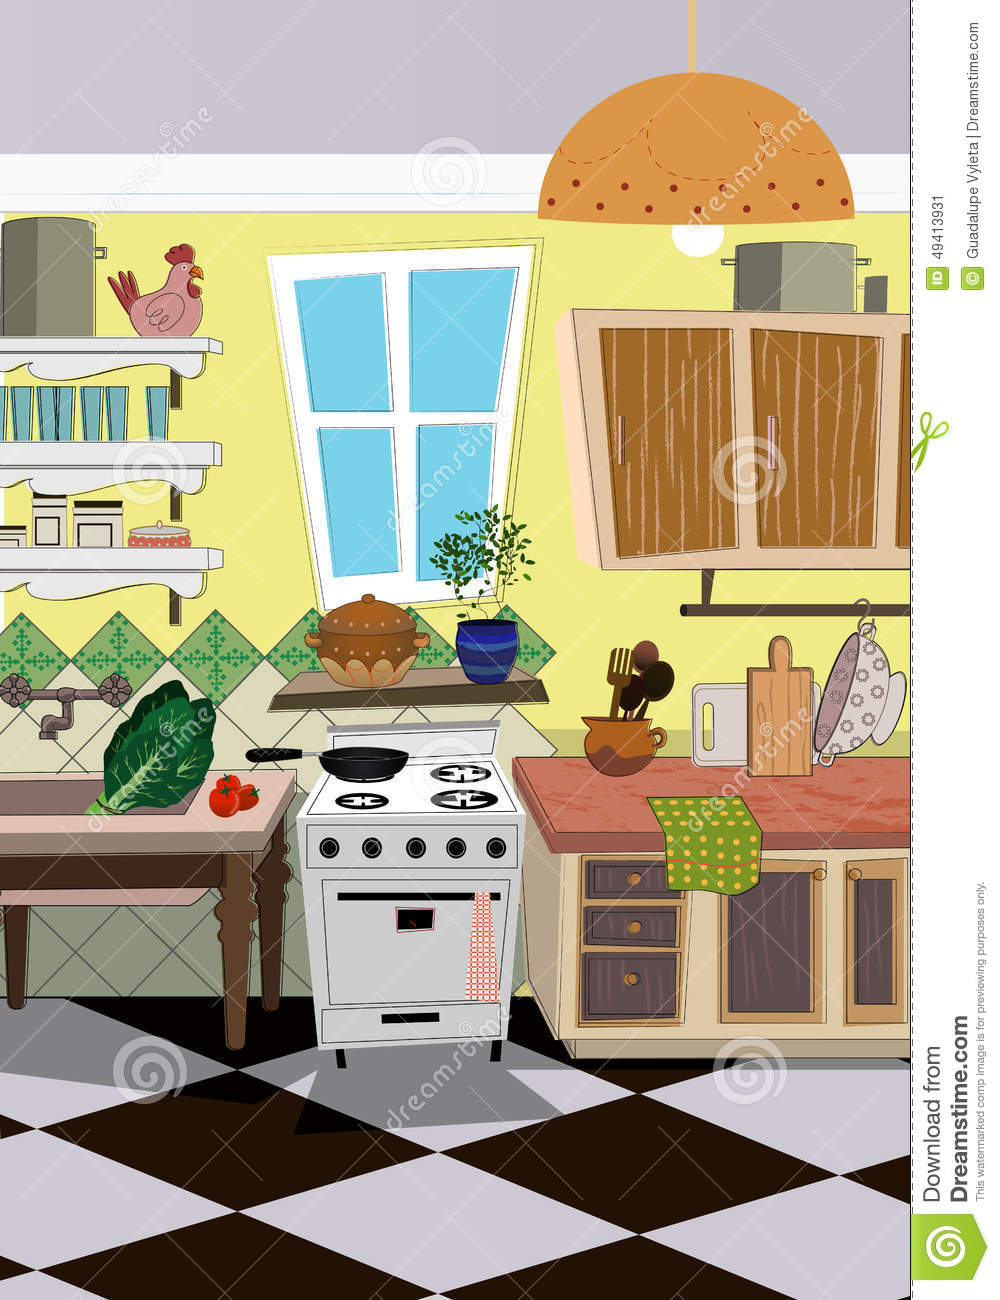 Kitchen Cartoon Style Background Stock Vector Illustration